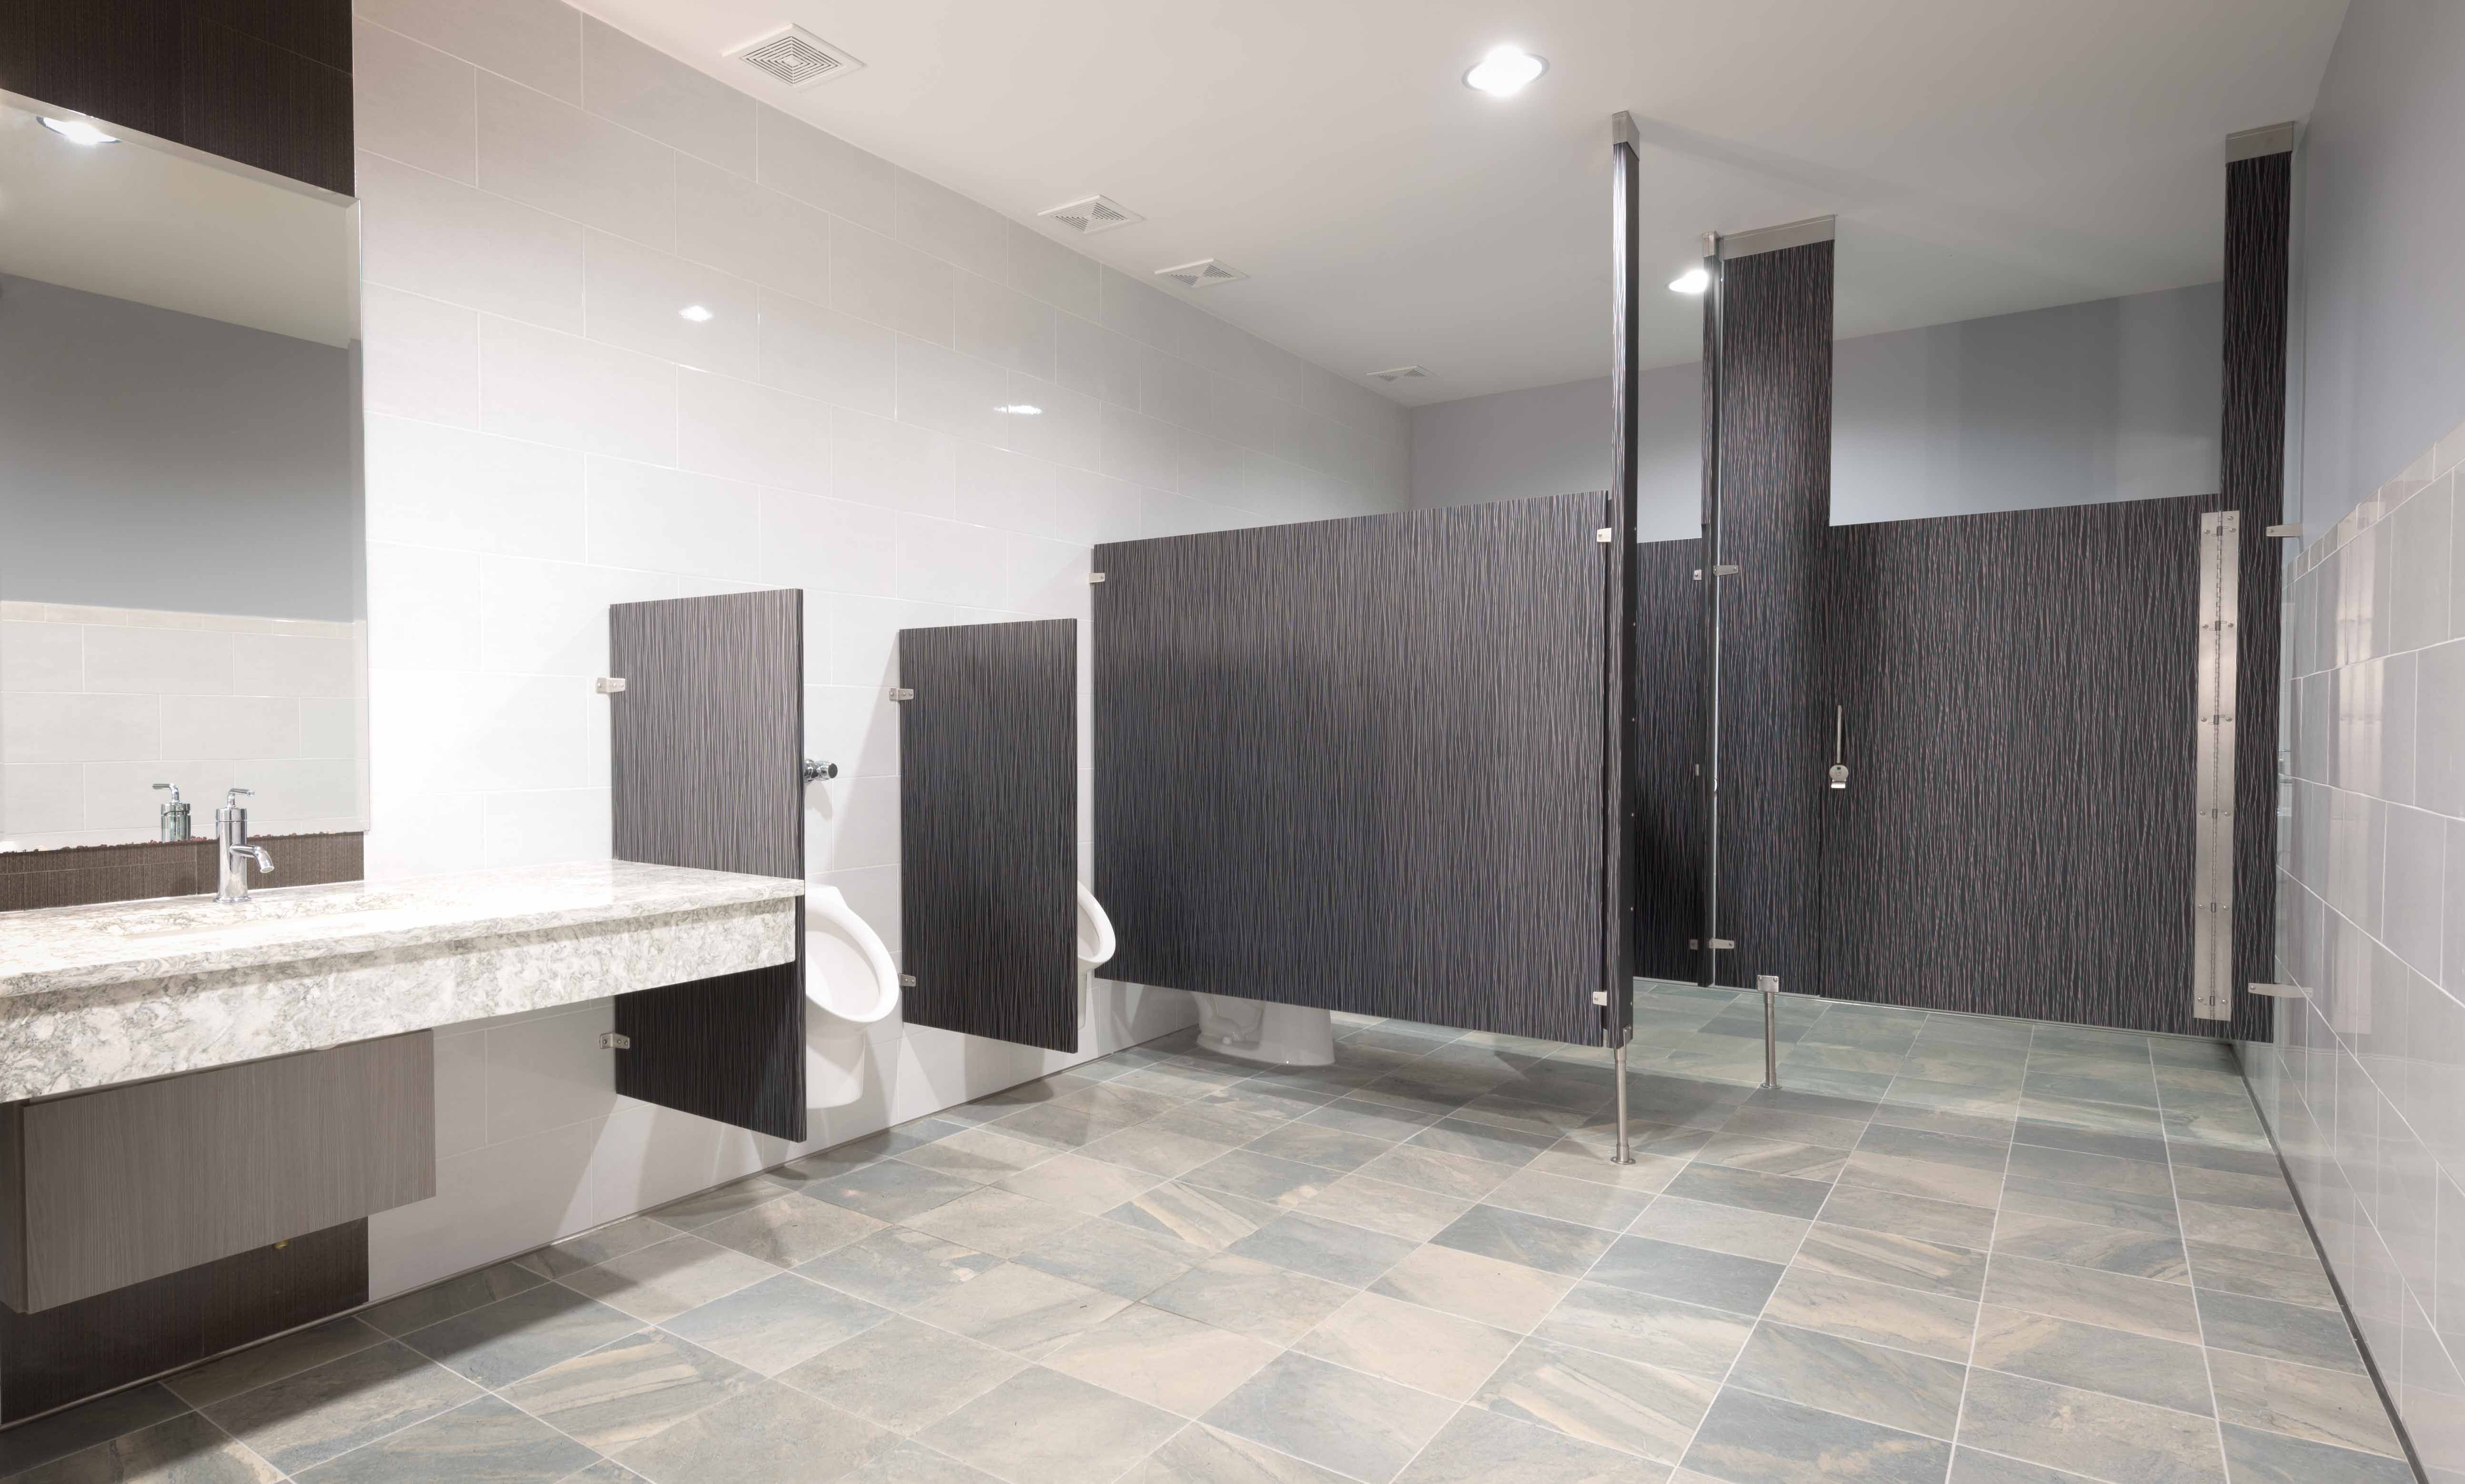 Ironwood Manufacturing Laminate Toilet Partitions And Bathroom Doors Beautiful Upscale Public Restroom Par Public Restroom Design Restroom Design Room Doors